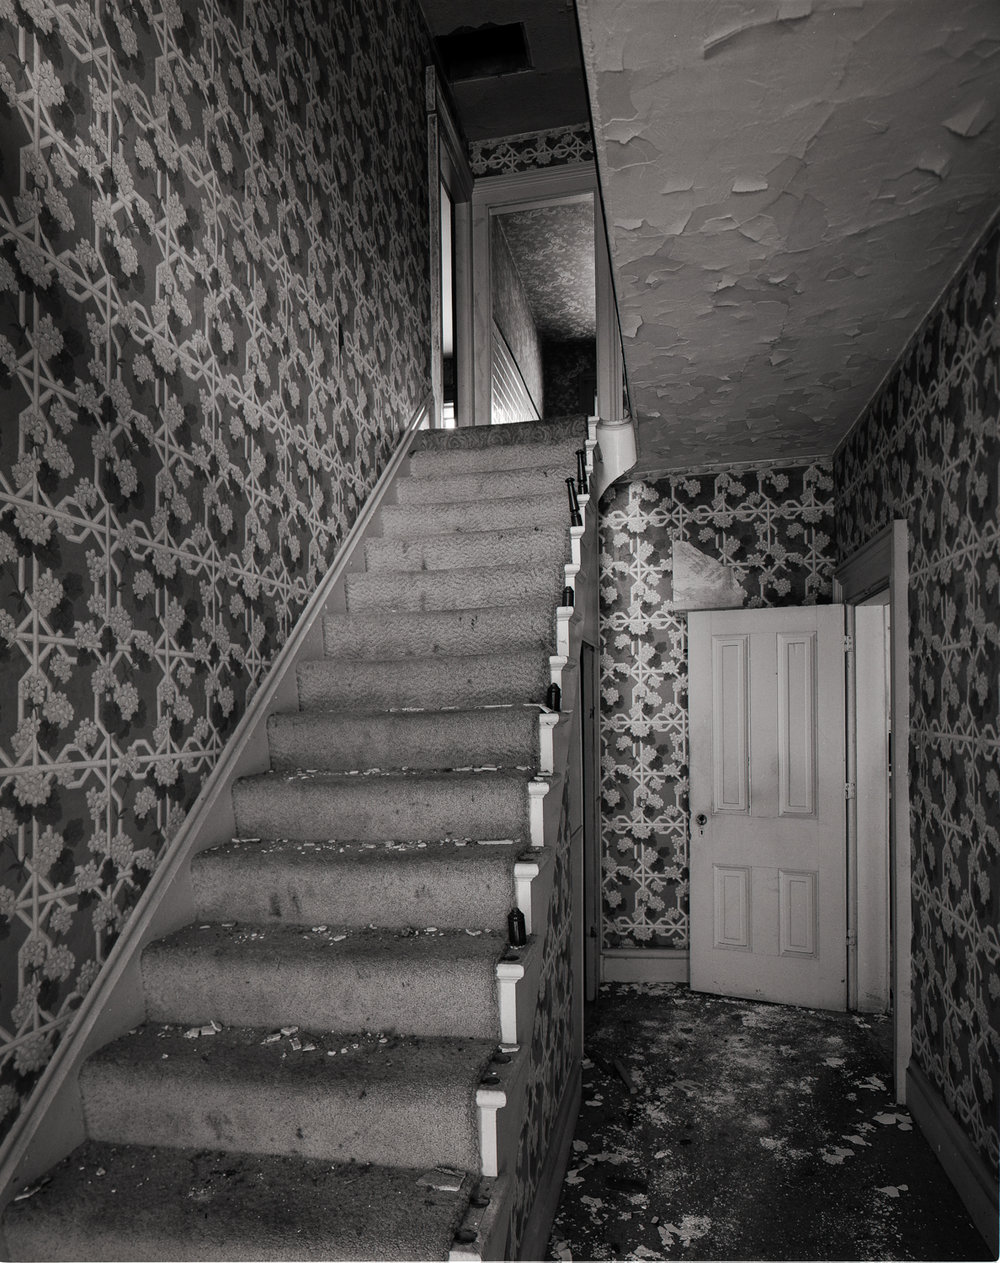 William Patrick Farmstead Stairway Illinois 2001